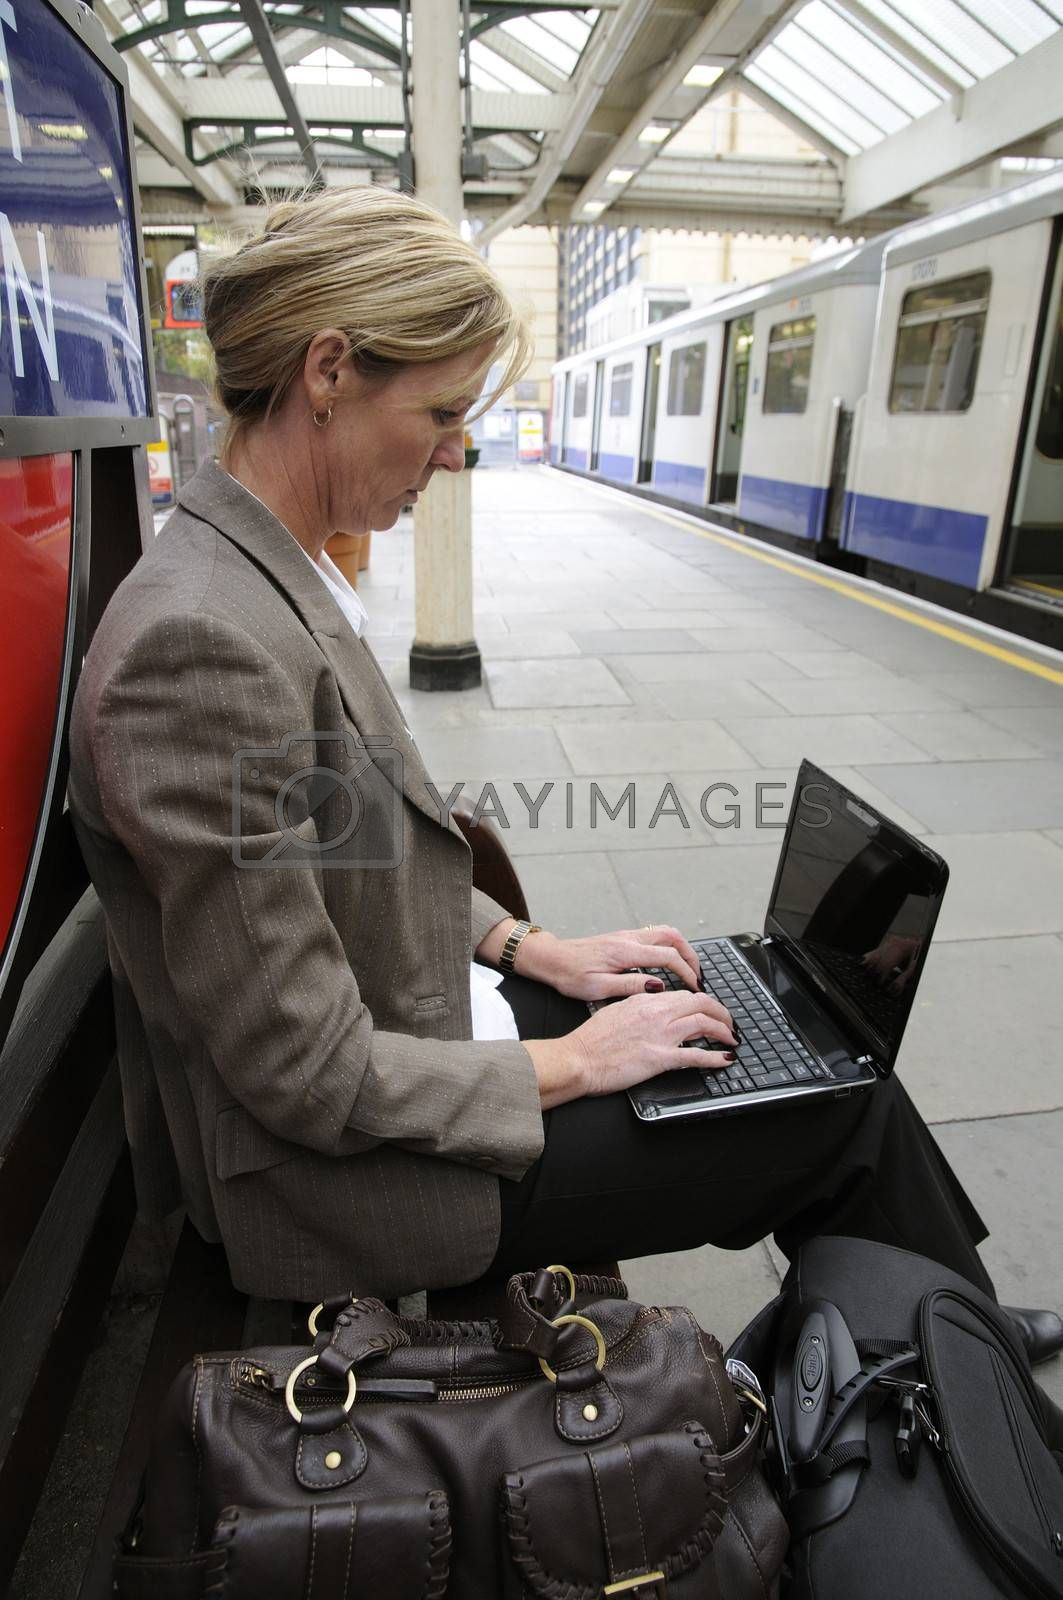 Businesswoman using a netbook computer sitting on a railway station platform